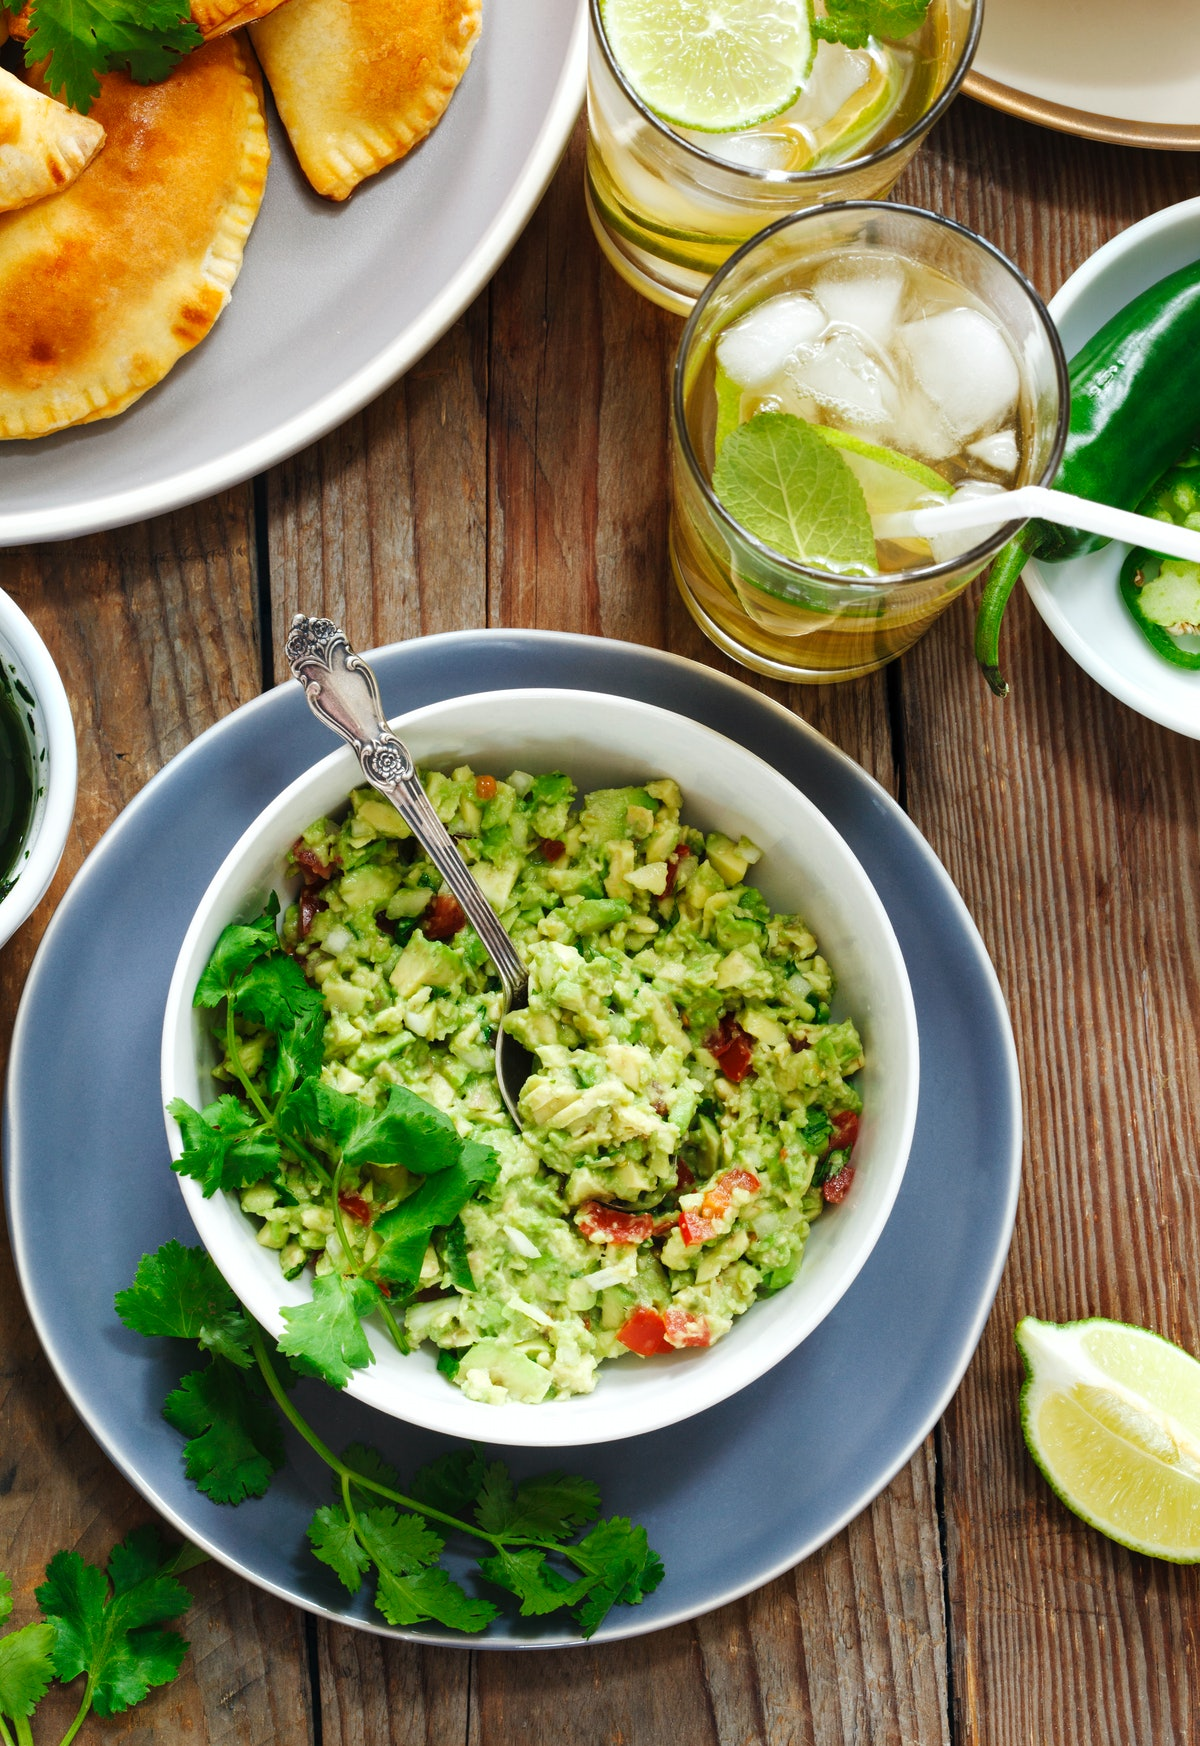 A bowl of guacamole sits on a wood table next to other vegan foods.